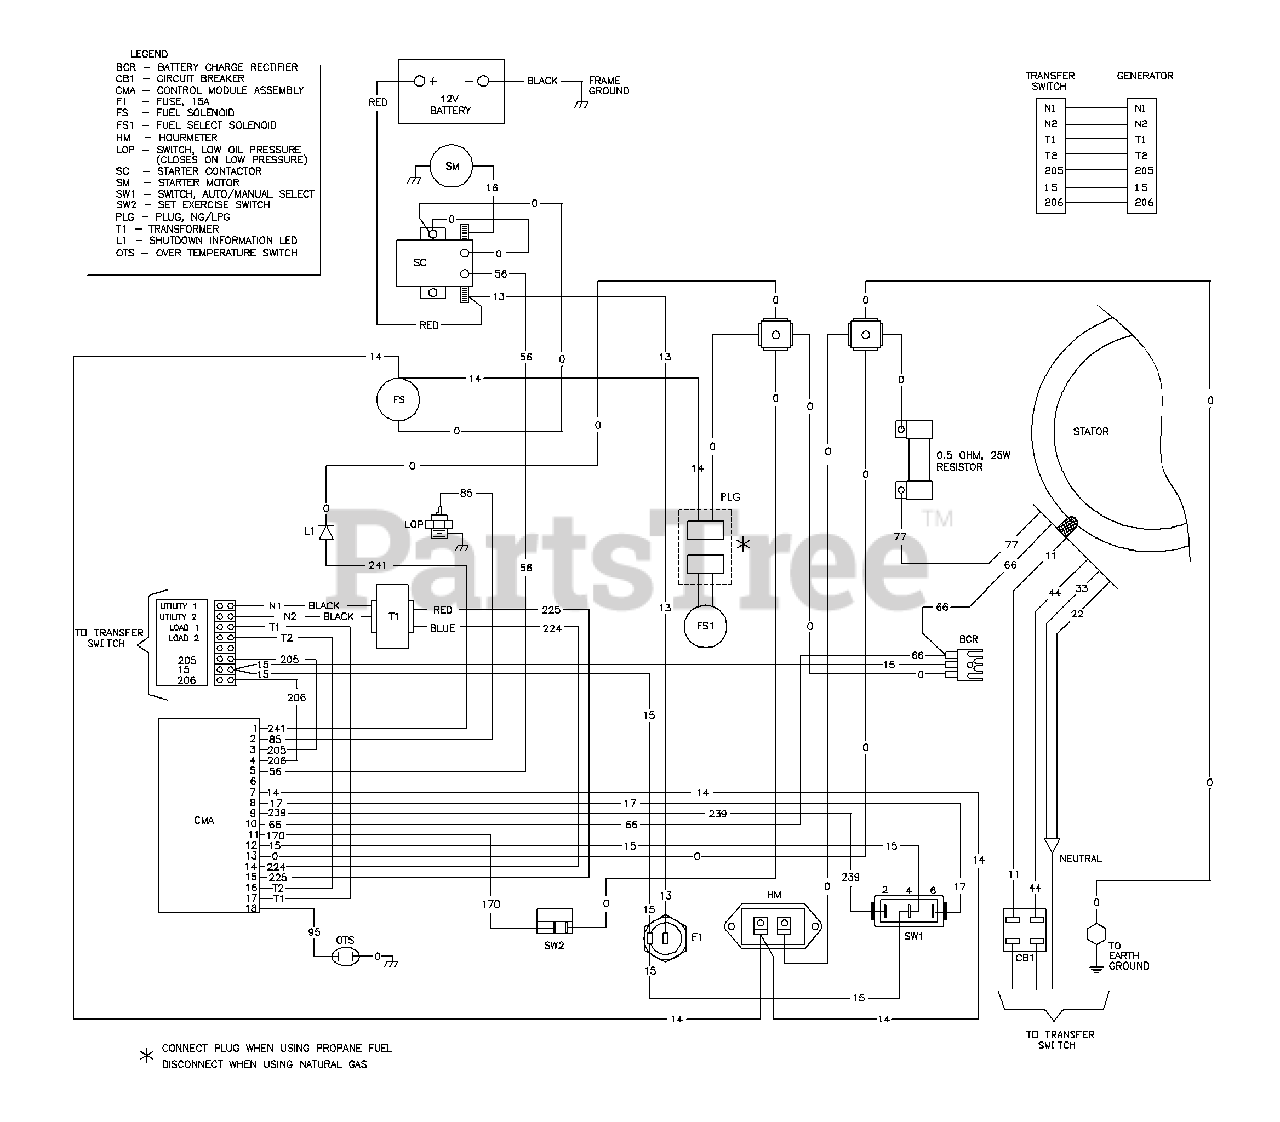 [DIAGRAM] Whole House Generator Wiring Diagram FULL